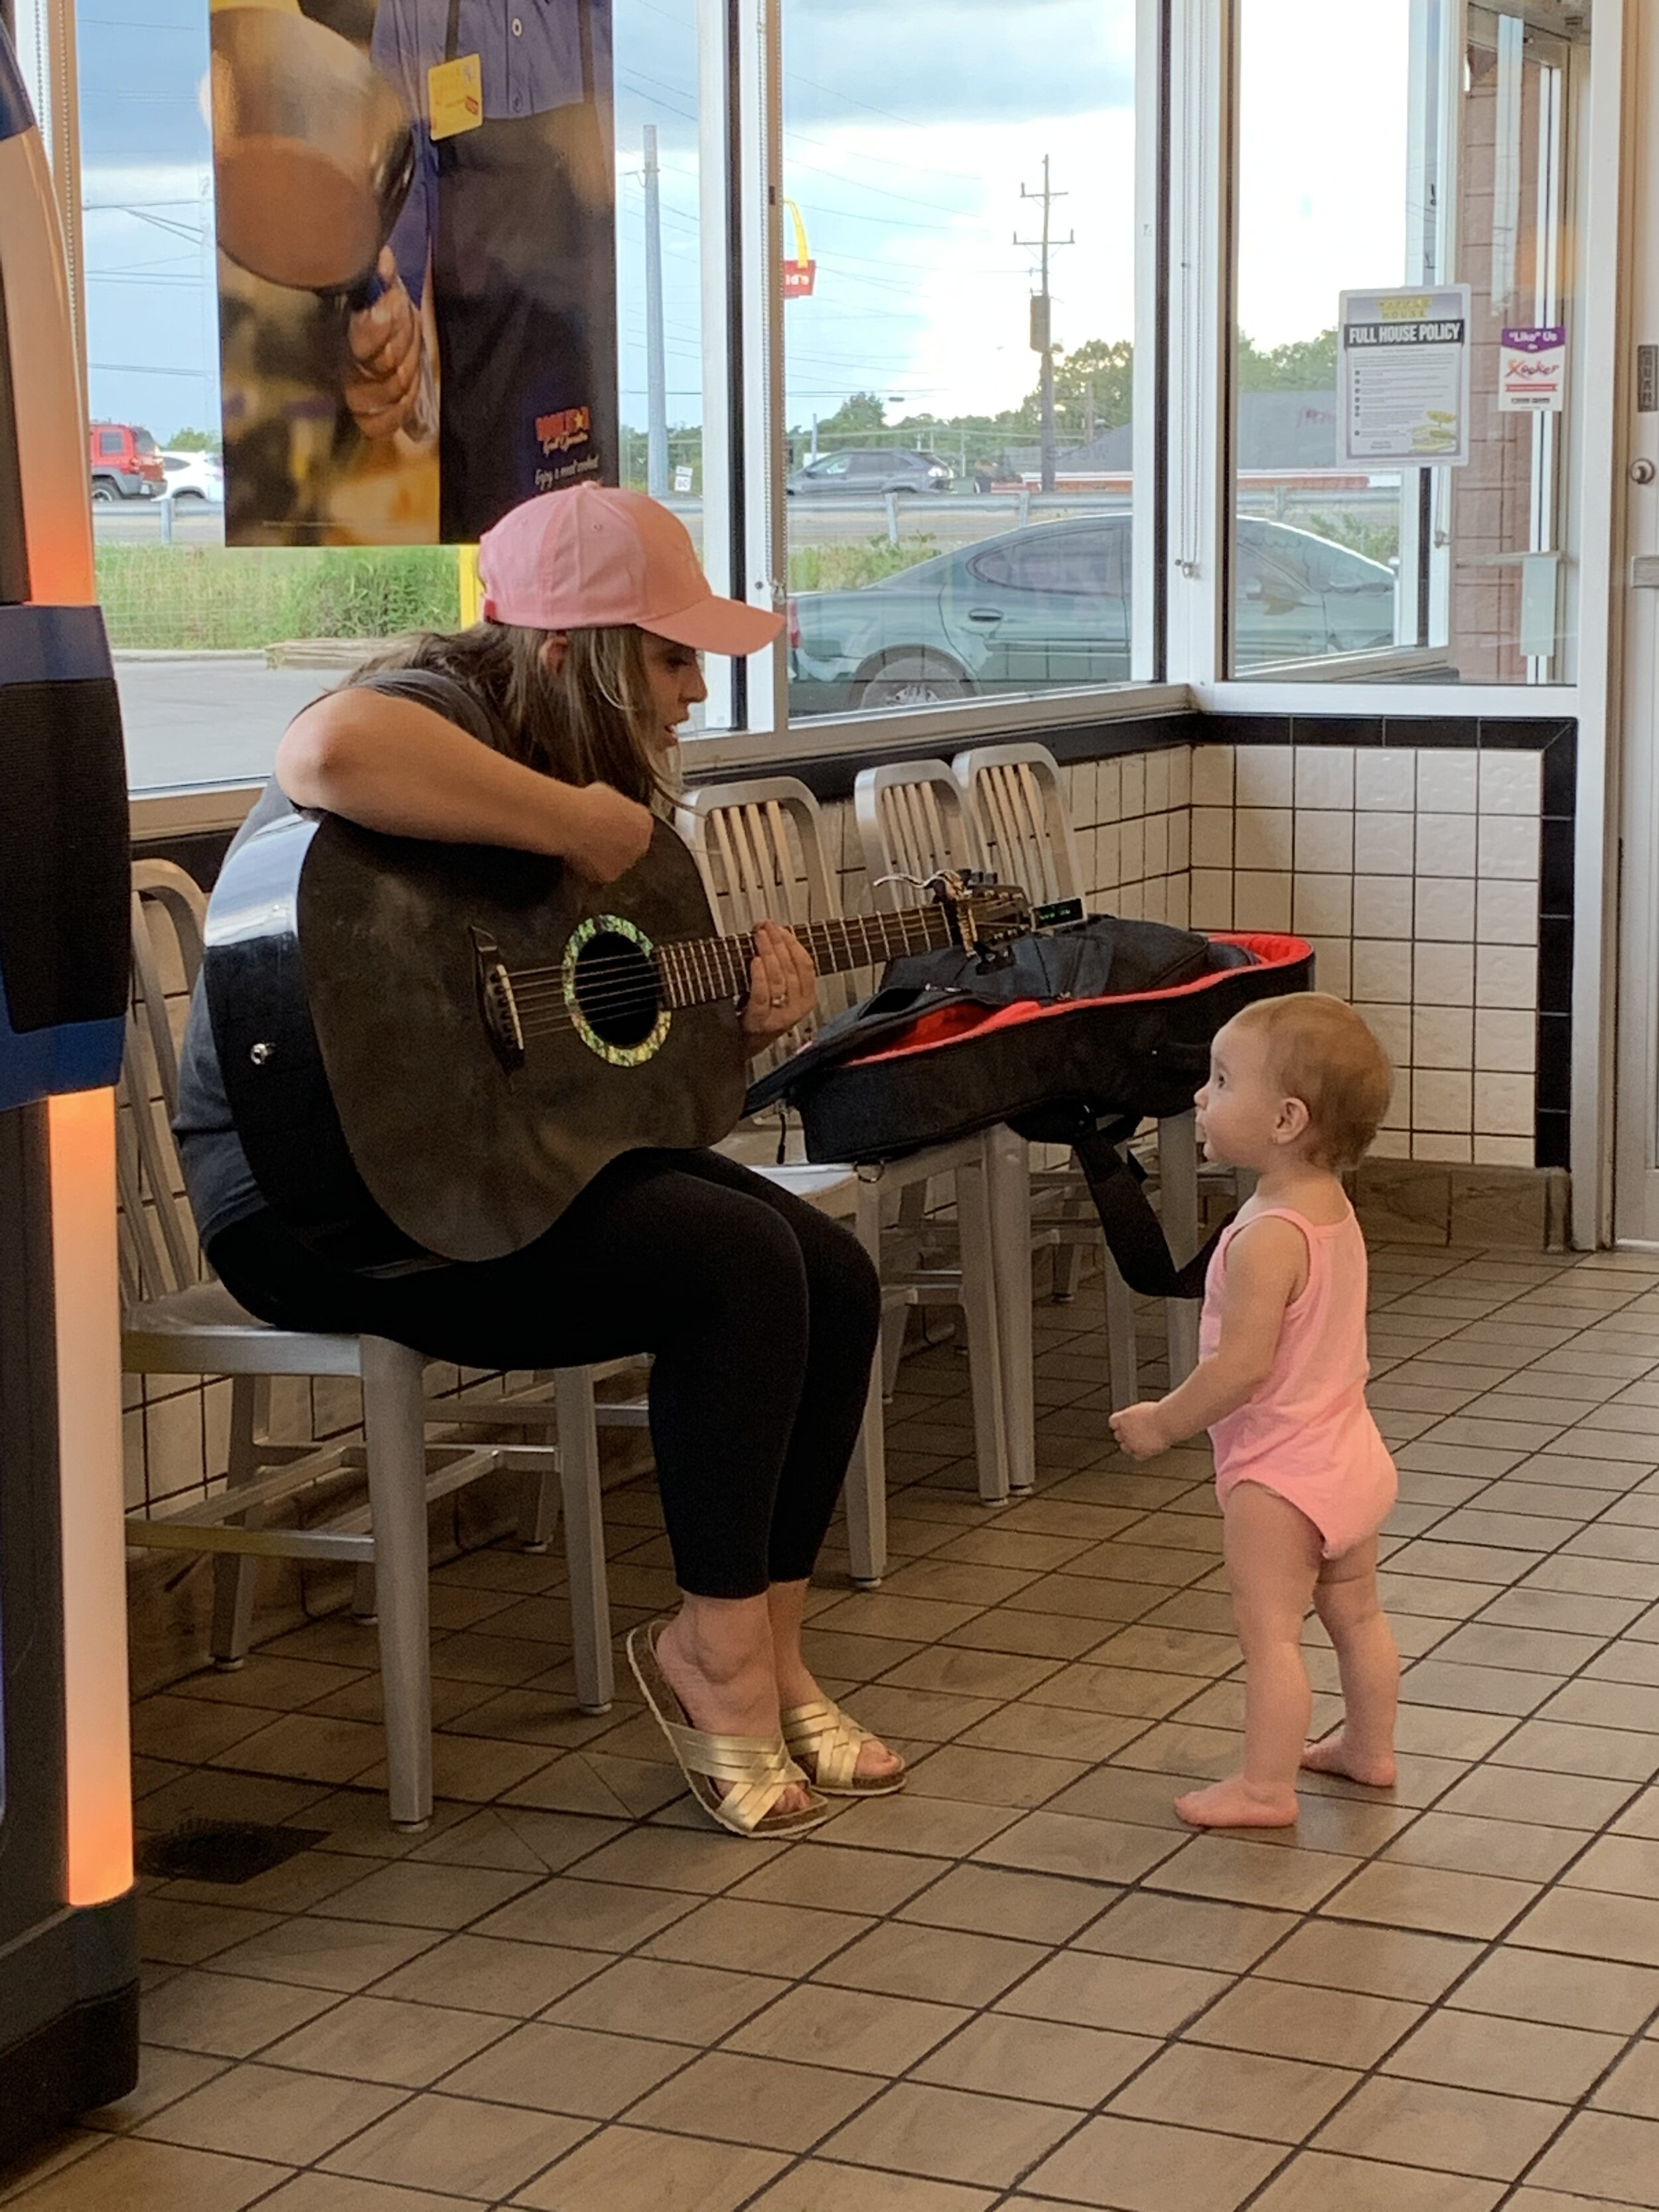 As part of the road trip from Nashville to Morgantown, West Virginia, Chancie provided content for WSM Radio, Waffle House and Gray Line Tennessee. She stop to play to fans inside the Waffle House, including the little girl celebrating her birthday above. She also wrote a jingle for Gray Line while she was traveling on the Sprinter provided by Gray Line.